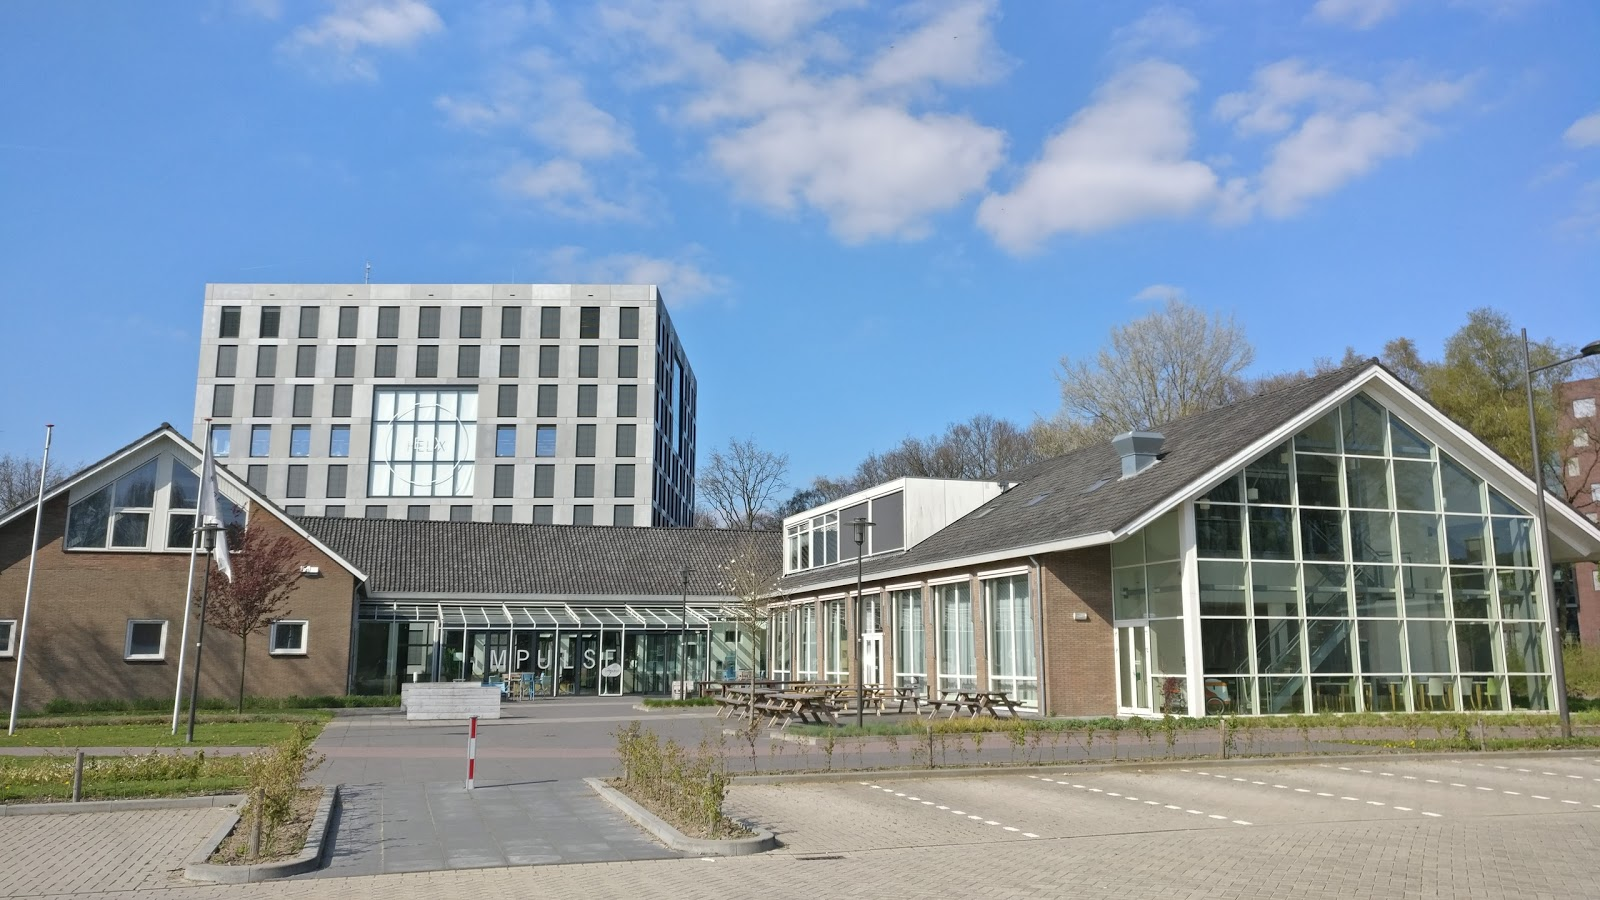 Impulse, Building number 115: A Work-Friendly Place in Wageningen